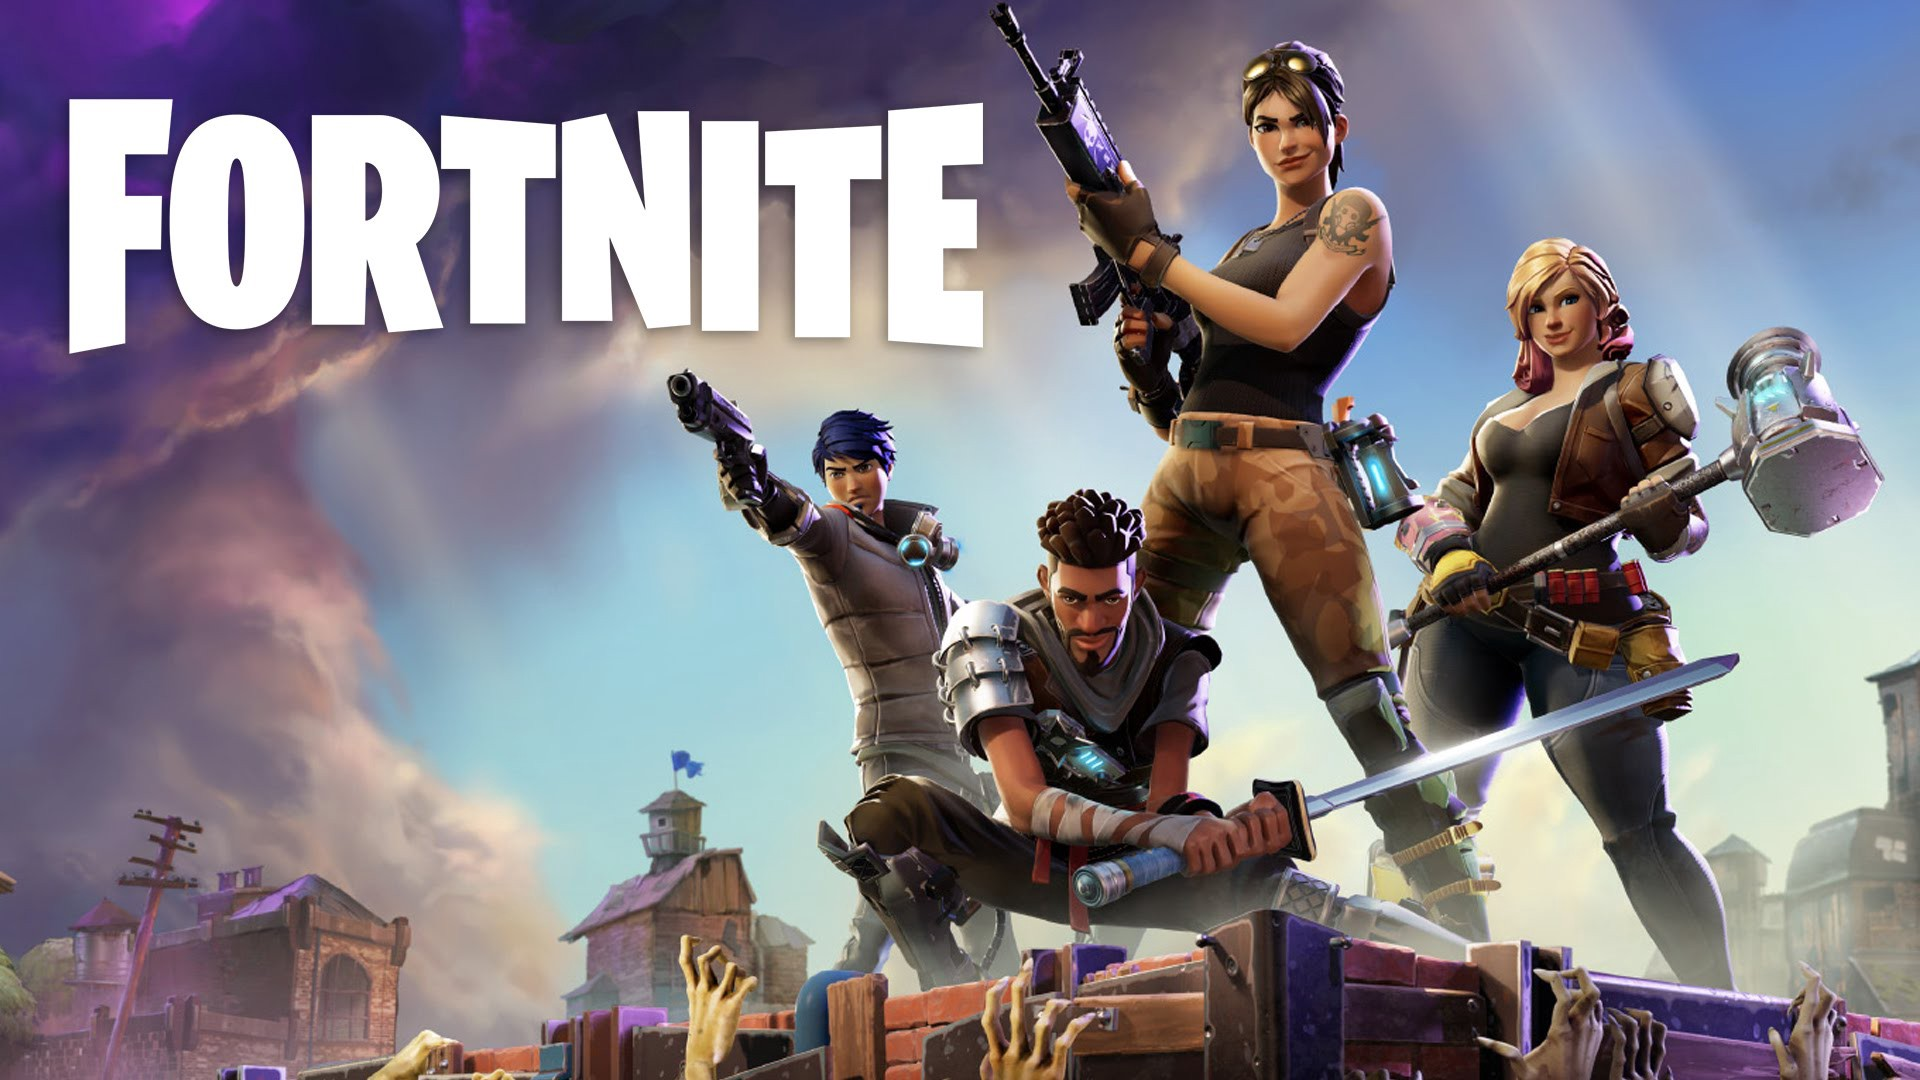 Buy Fortnite, PUBG, Frostpunk & more games with Dash!